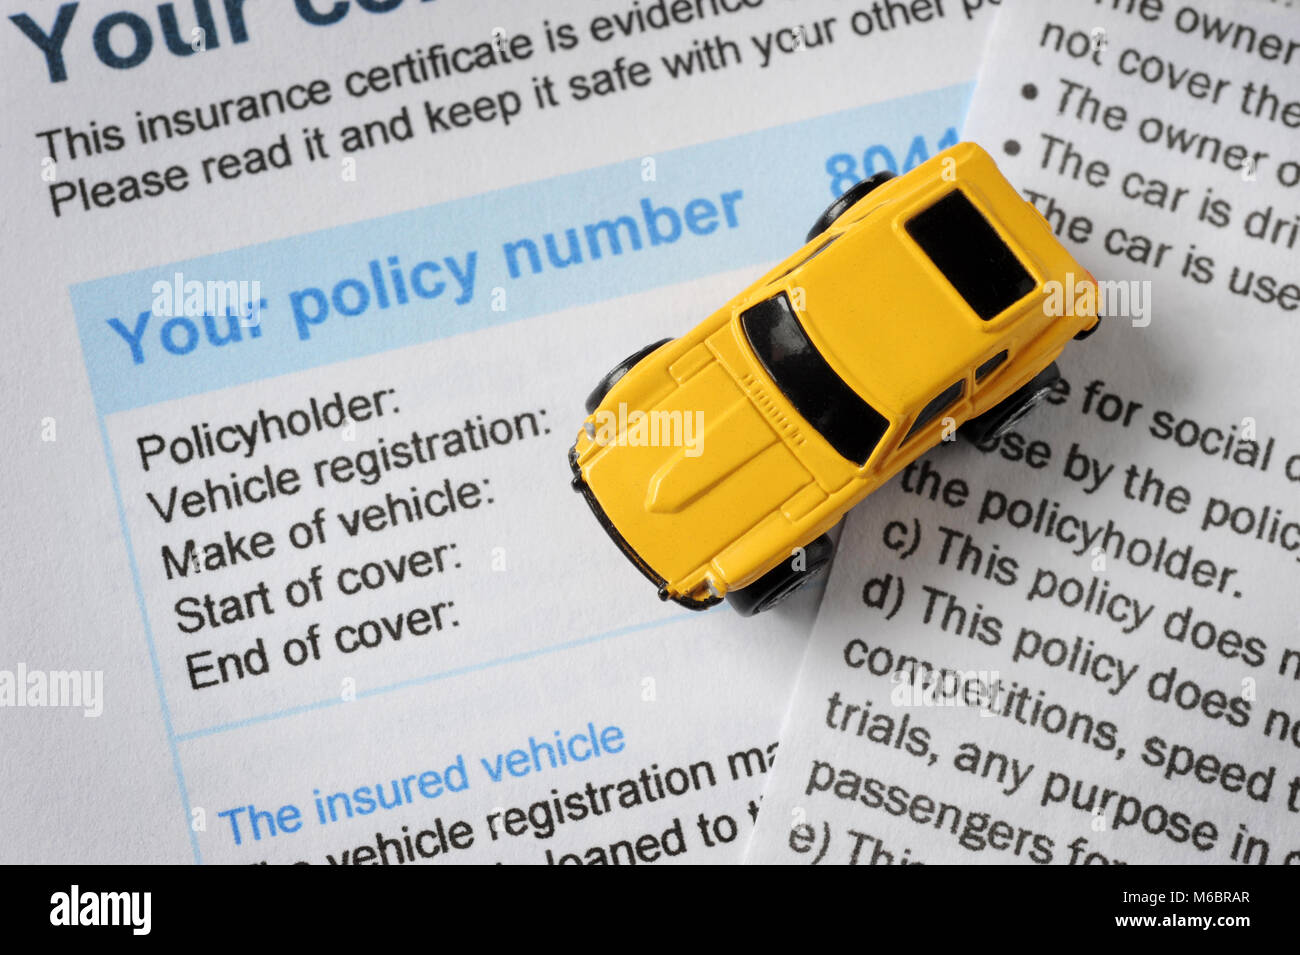 TOY CAR WITH CAR INSURANCE CERTIFICATE RE CLAIMS MOTORS POLICY RISING PREMIUMS COST ETC UK - Stock Image